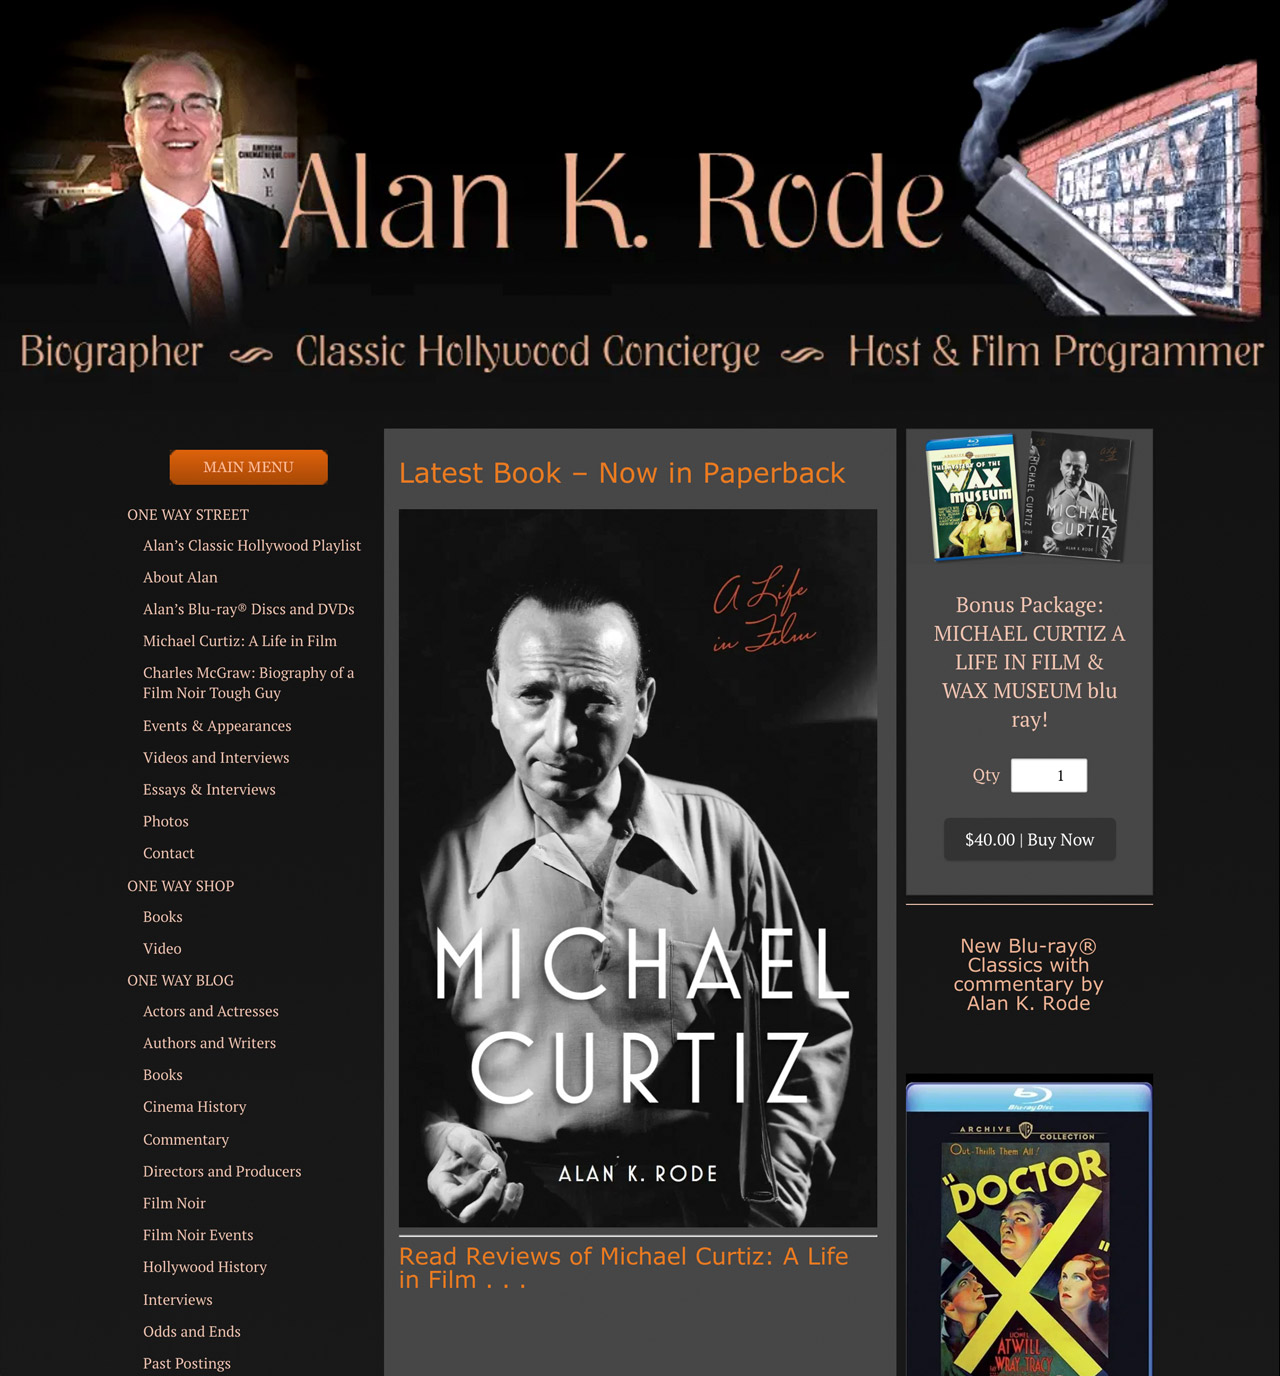 Alan K. Rode smiling on homepage of his website that features hardcover biography of Michael Curtiz written by Alan K. Rode.